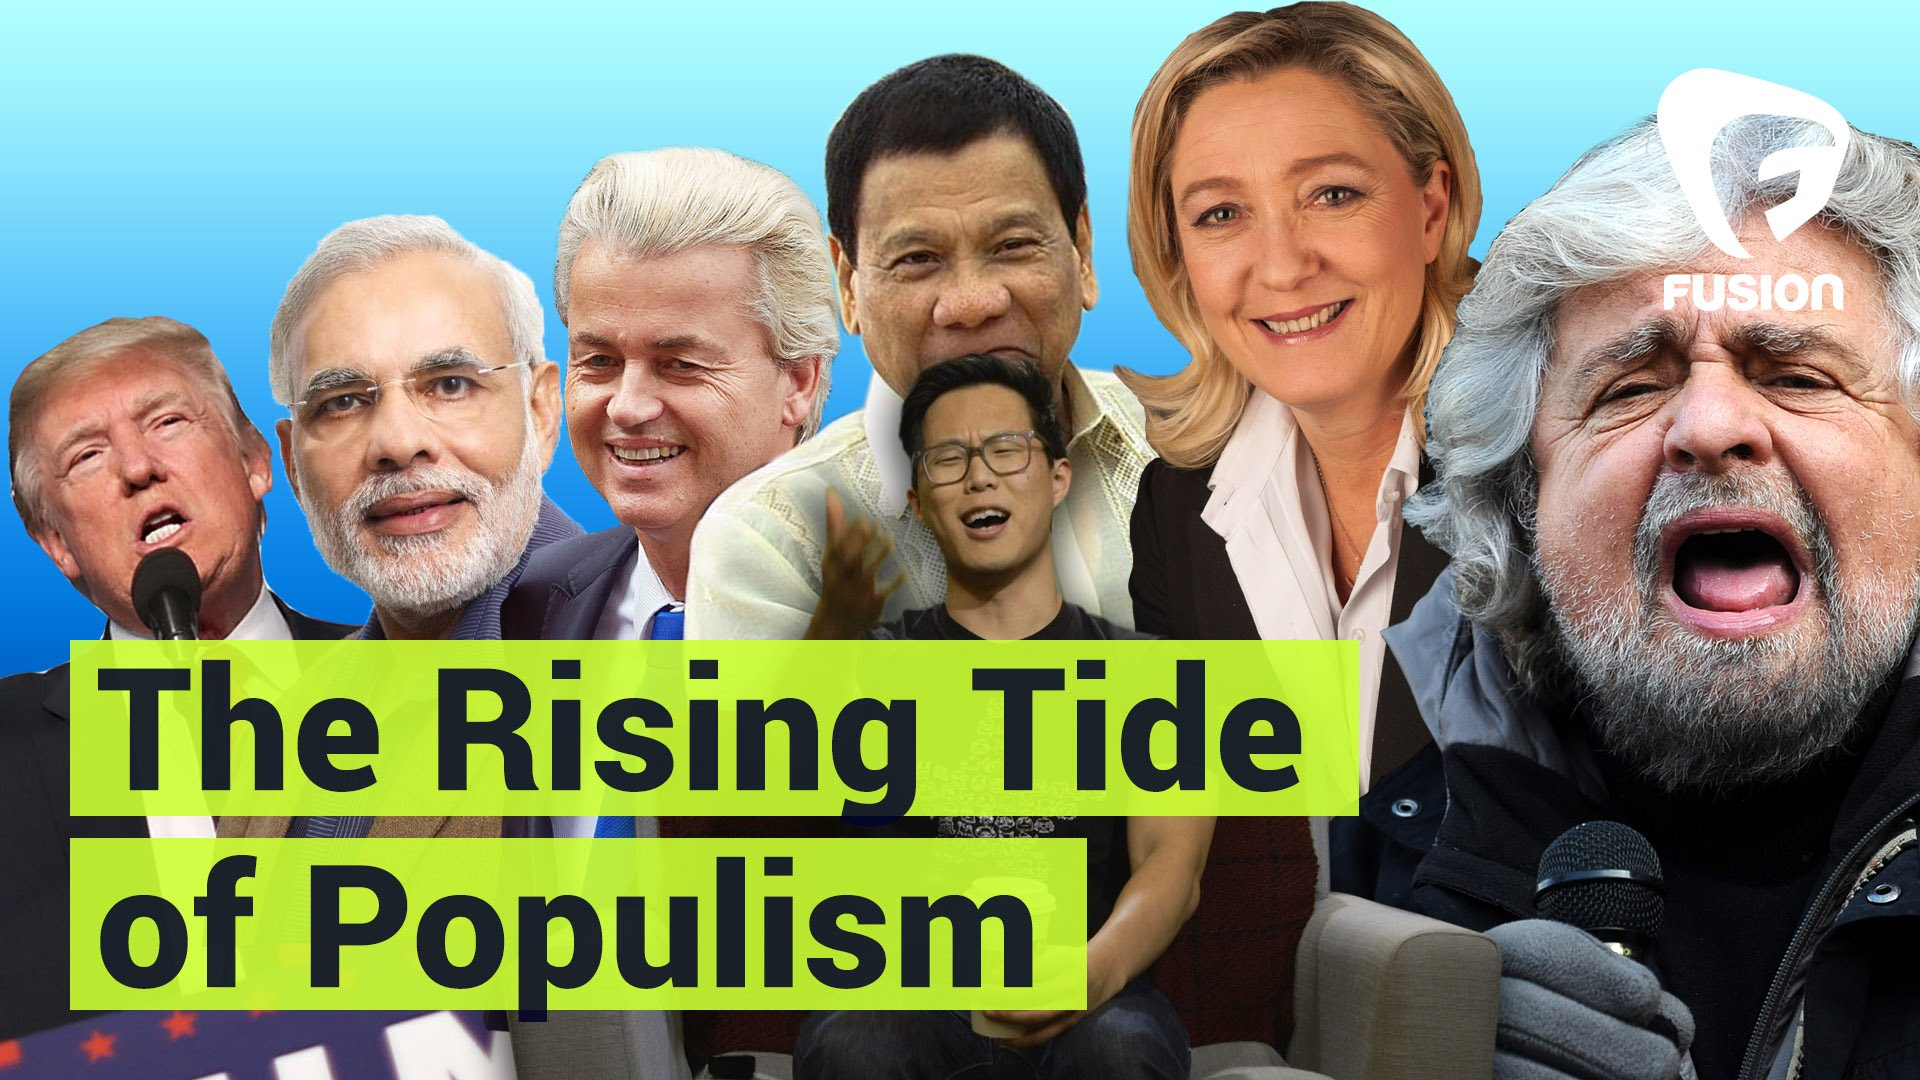 globalism vs nationalism Nationalism and globalisation are two central phenomena of the modern world, that have both shaped and been shaped by each other, yet few connections have been made.